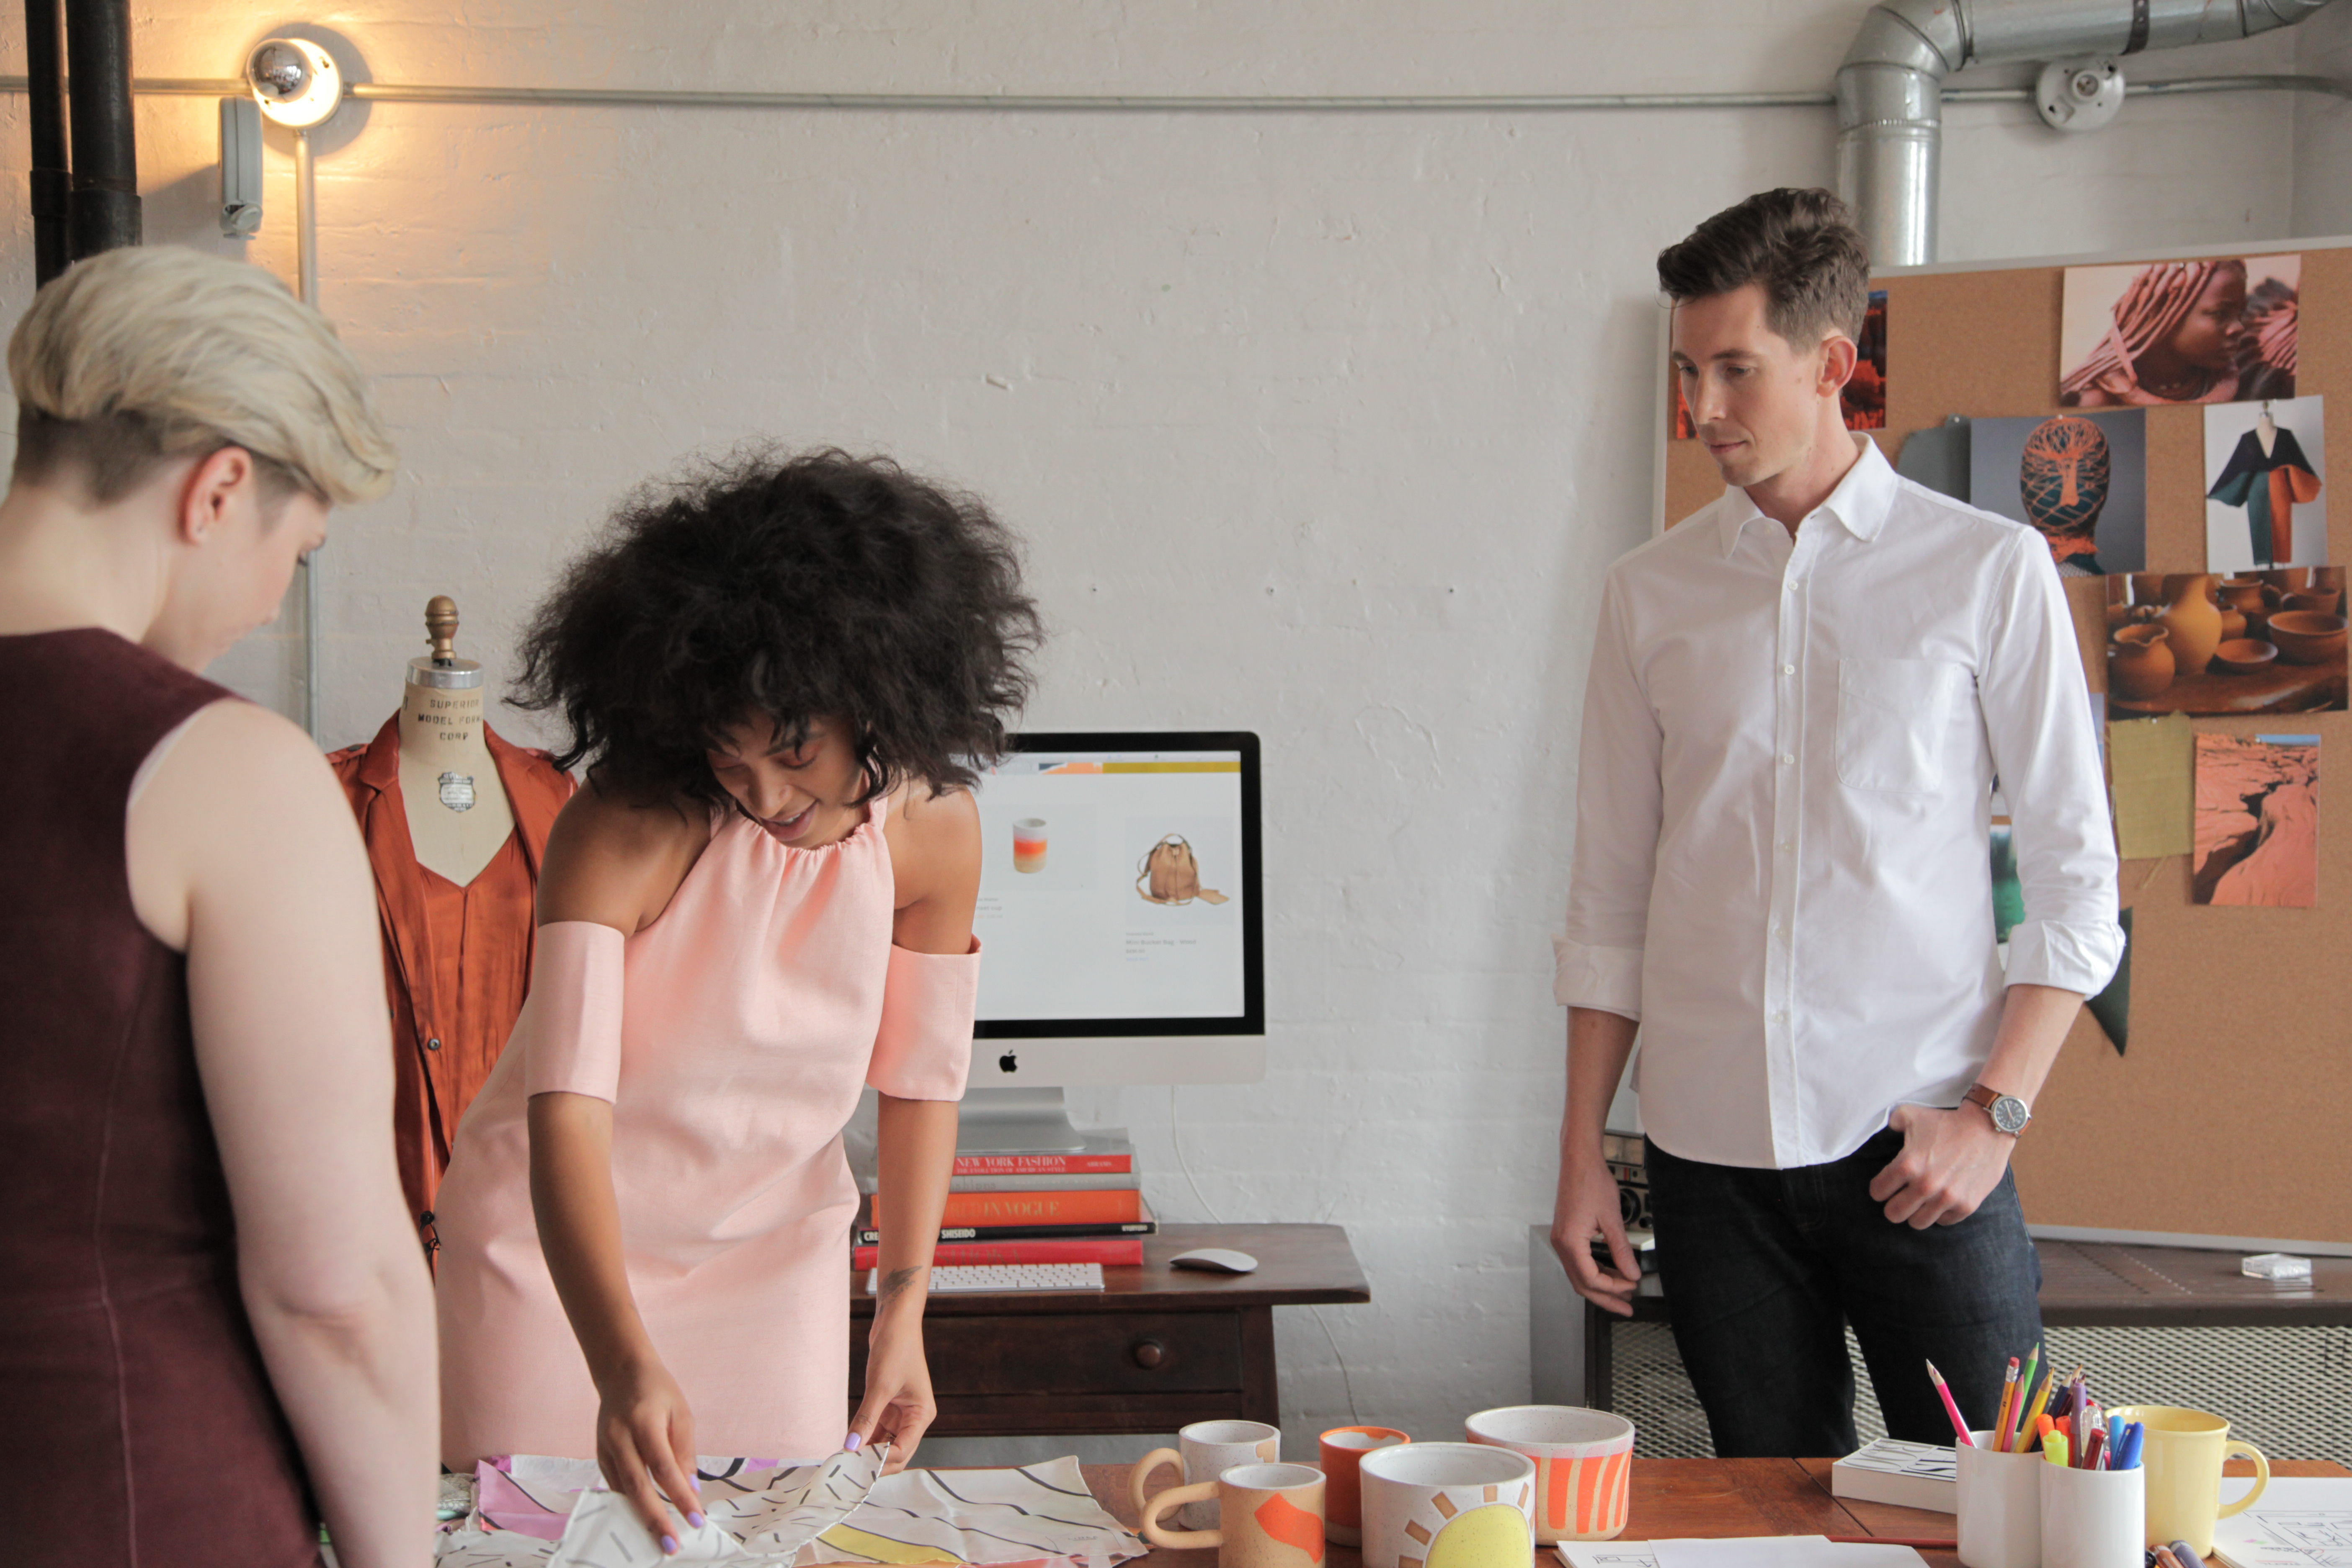 Solange Knowles worked with Bigcommerce working on the new Saint Heron e-commerce store design.